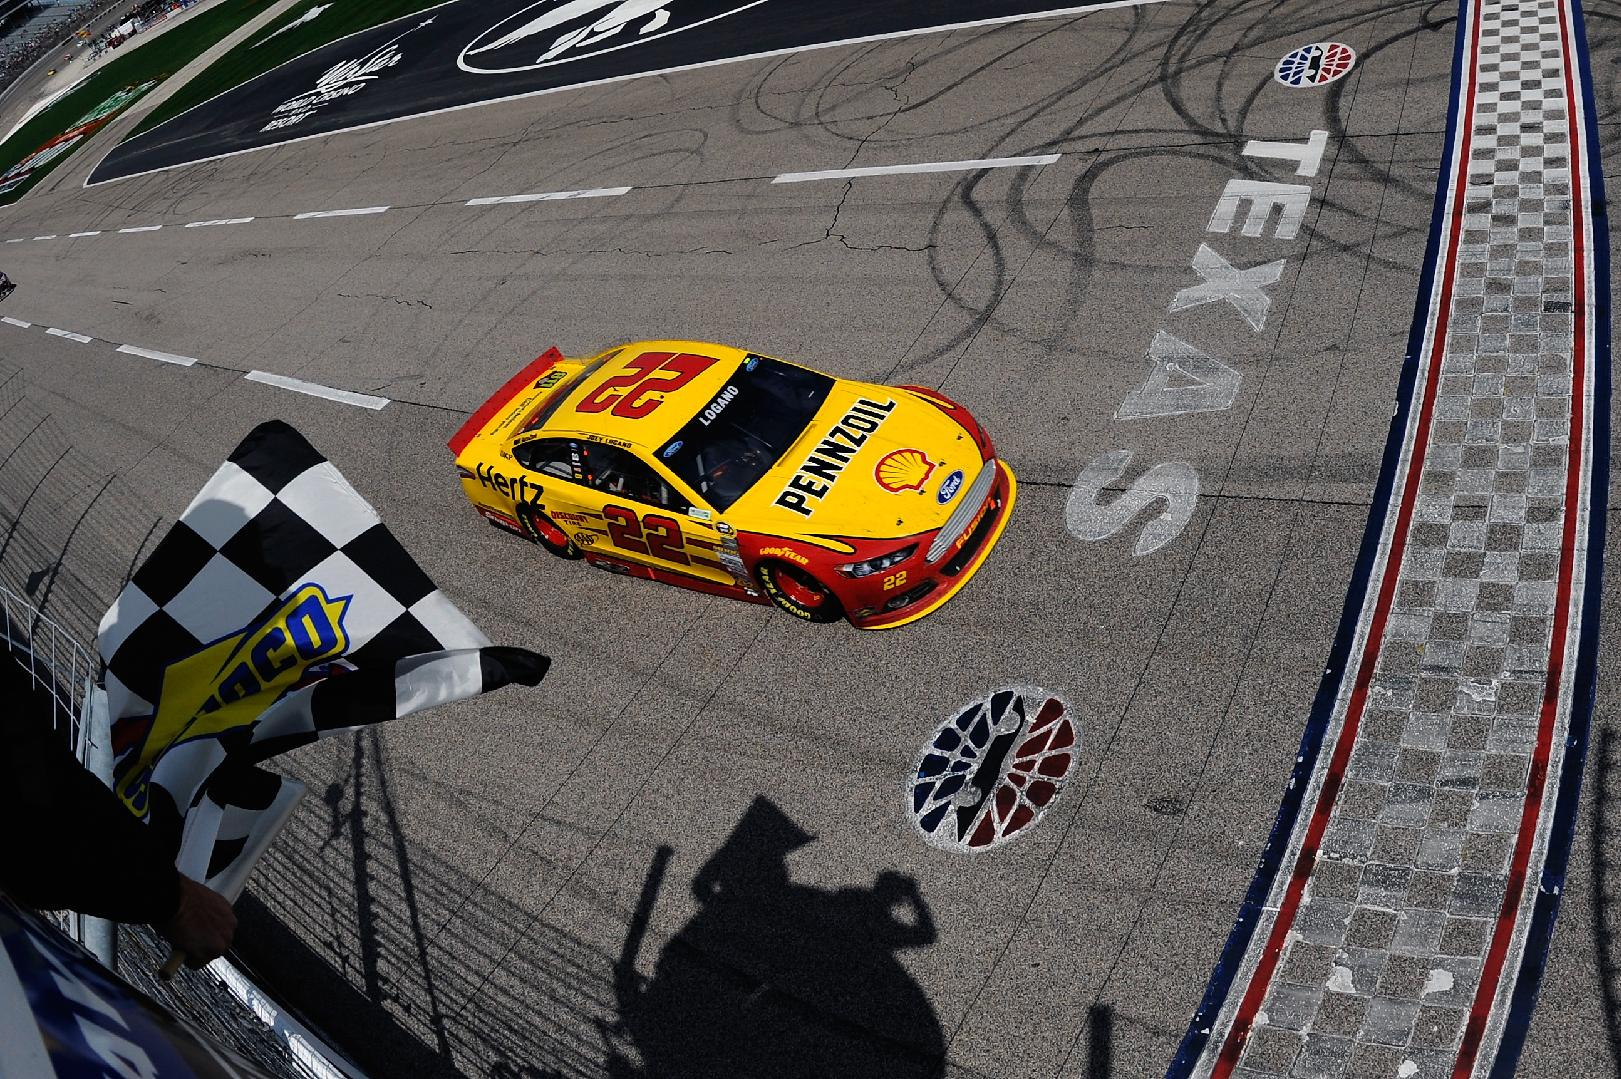 Team Penske can look toward Chase after Logano win